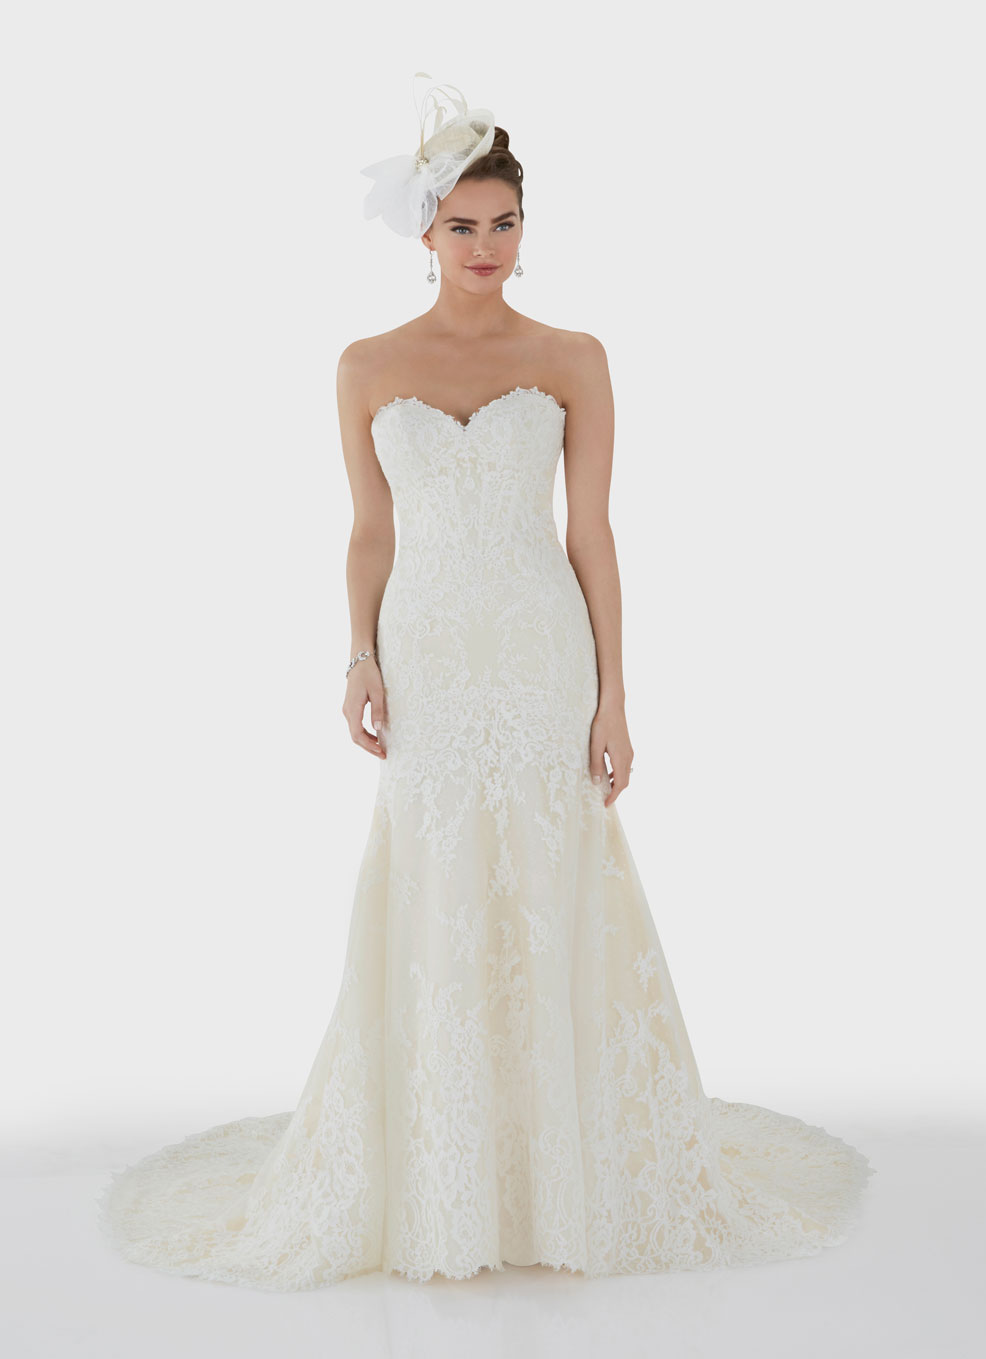 MCCOSETTE Bridal Gown by Matthew Christopher Front